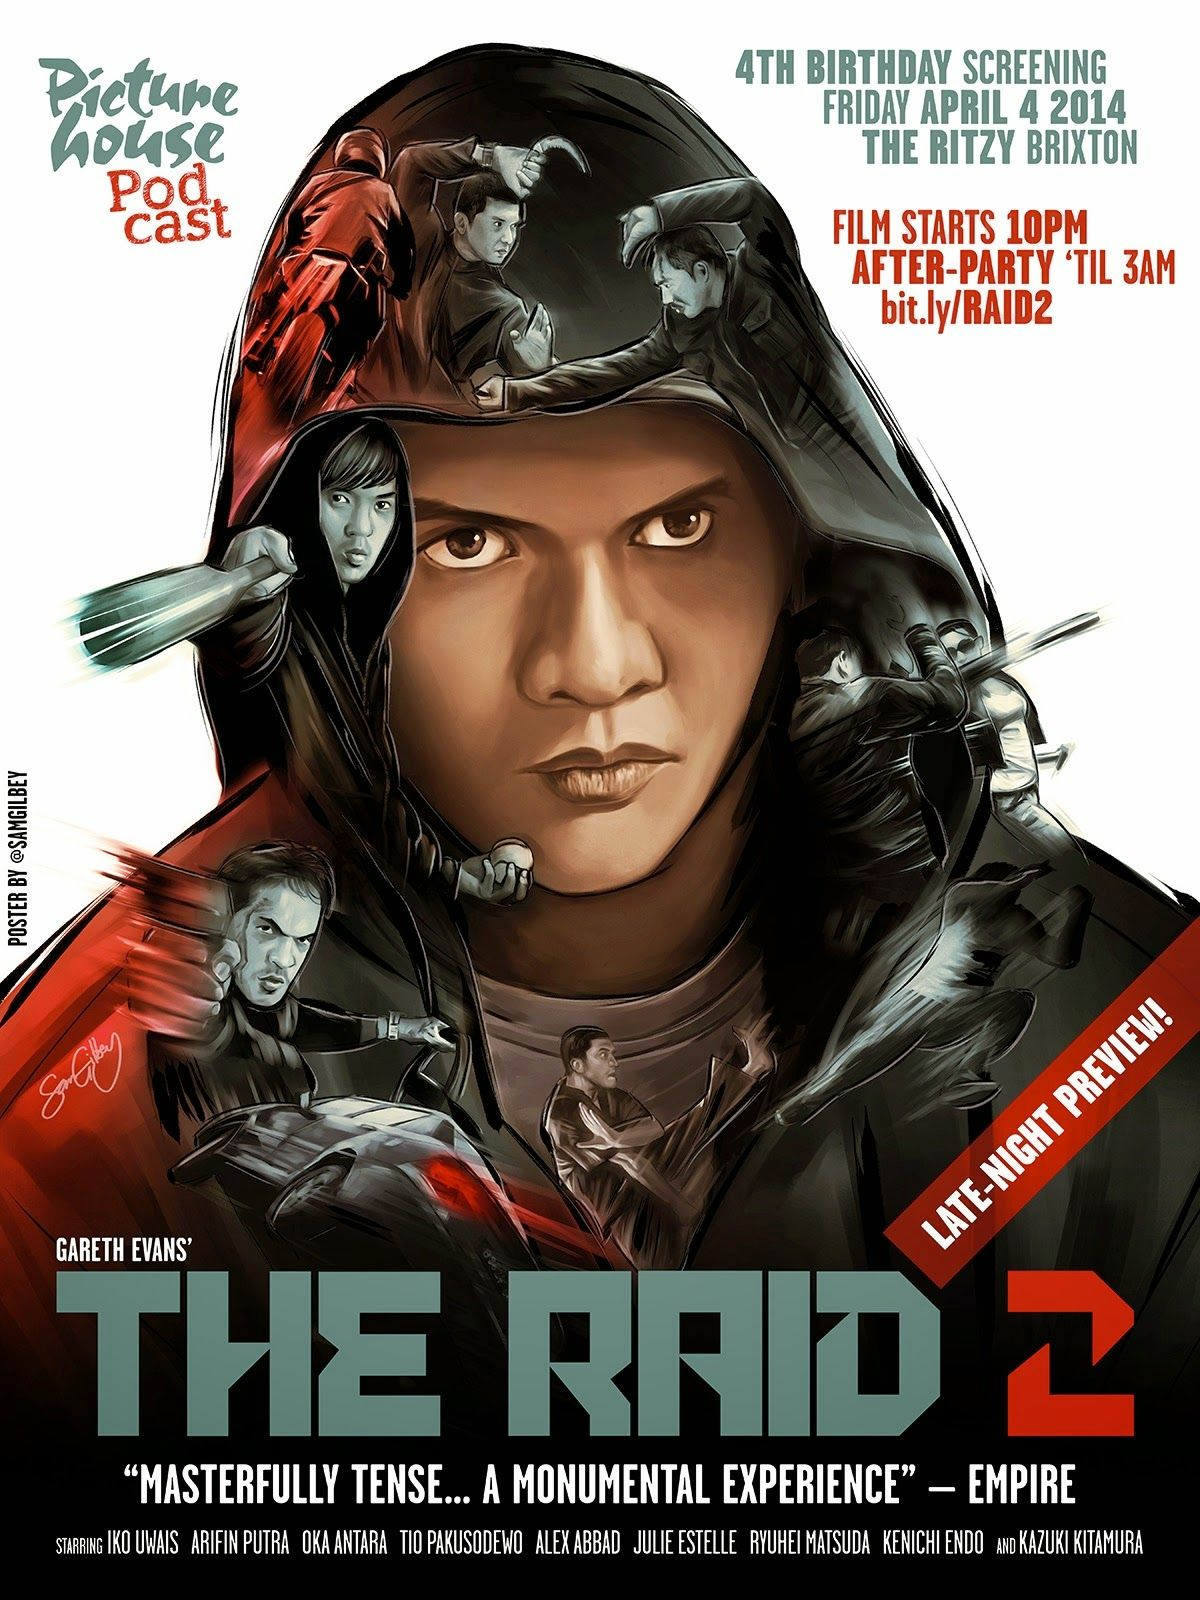 Cool Art The Raid 2 By Sam Gilbey The Raid 2 Movie Posters Best Movie Posters